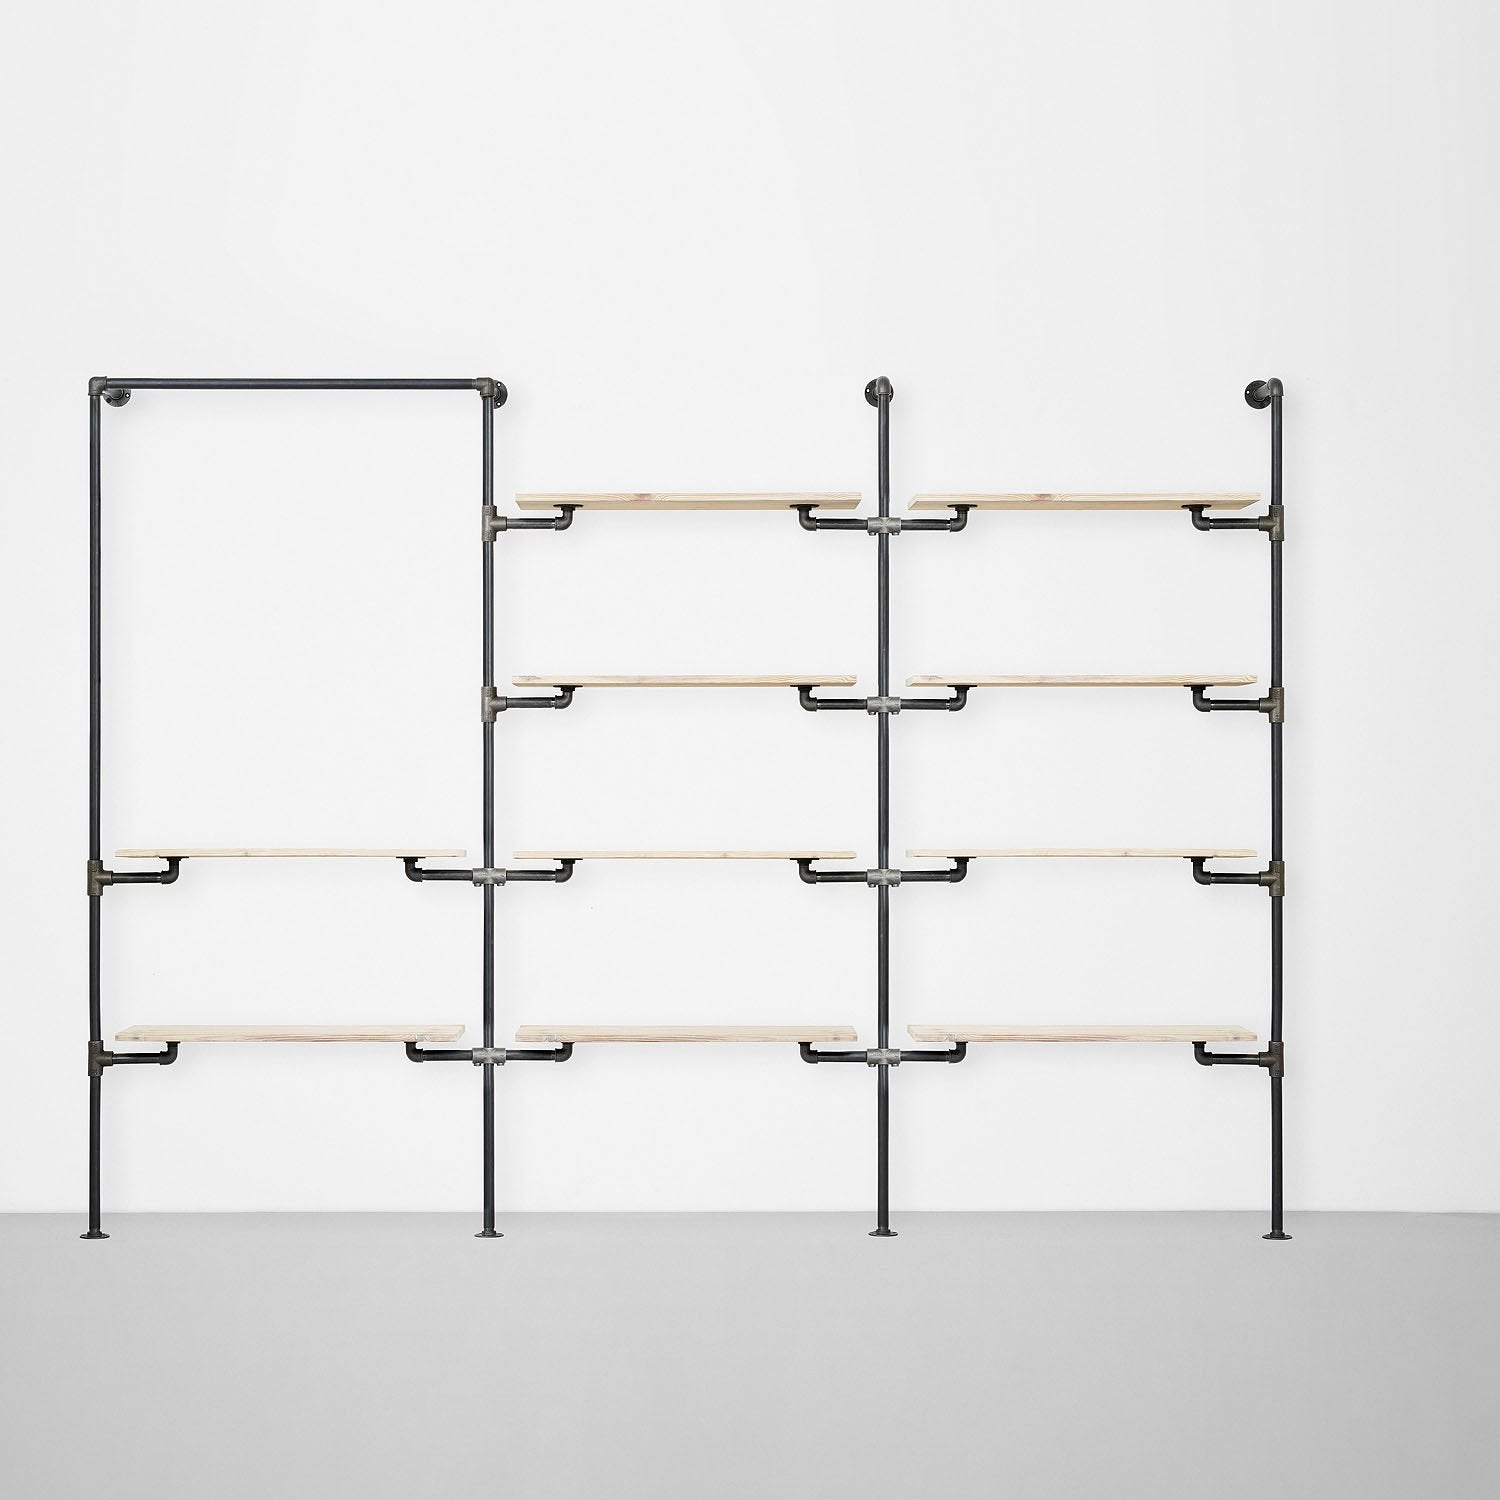 The Walk-In 3 row wardrobe system - (1 rail + 2 shelves / 4 shelves / 4 shelves)